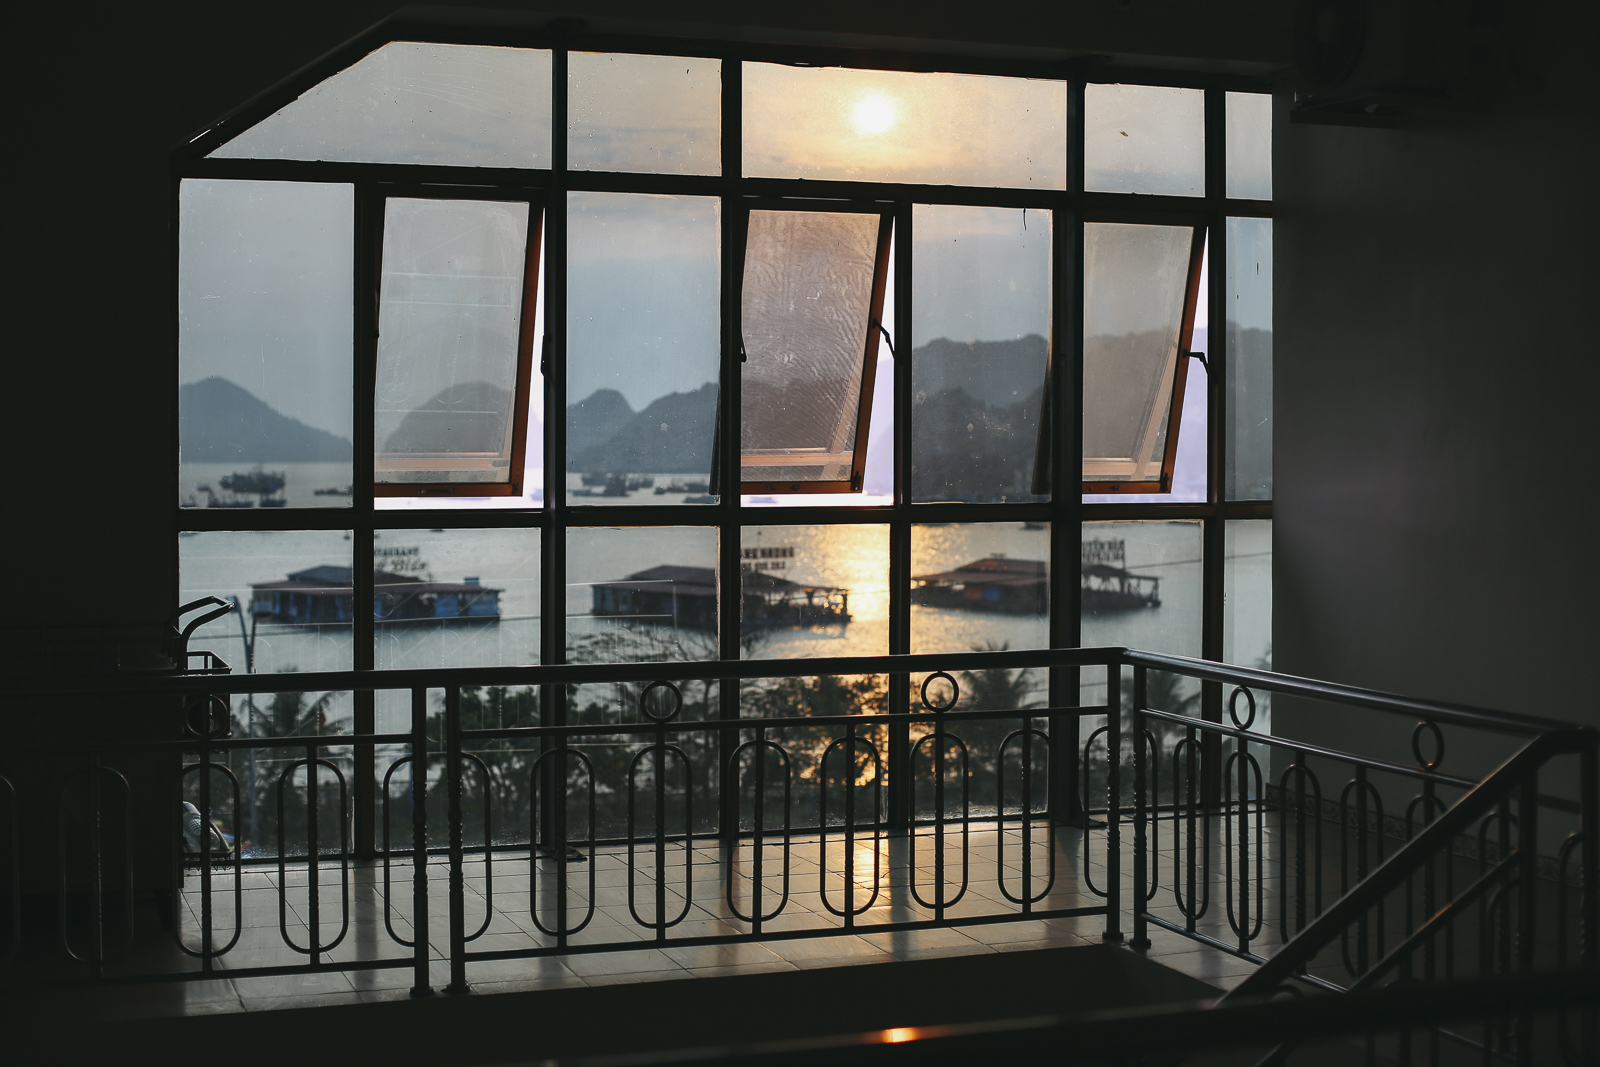 CatBa_12, Cat Ba Island and Halong Bay, a Photo and Travel Diary by The Curly Head, Photography by Amelie Niederbuchner